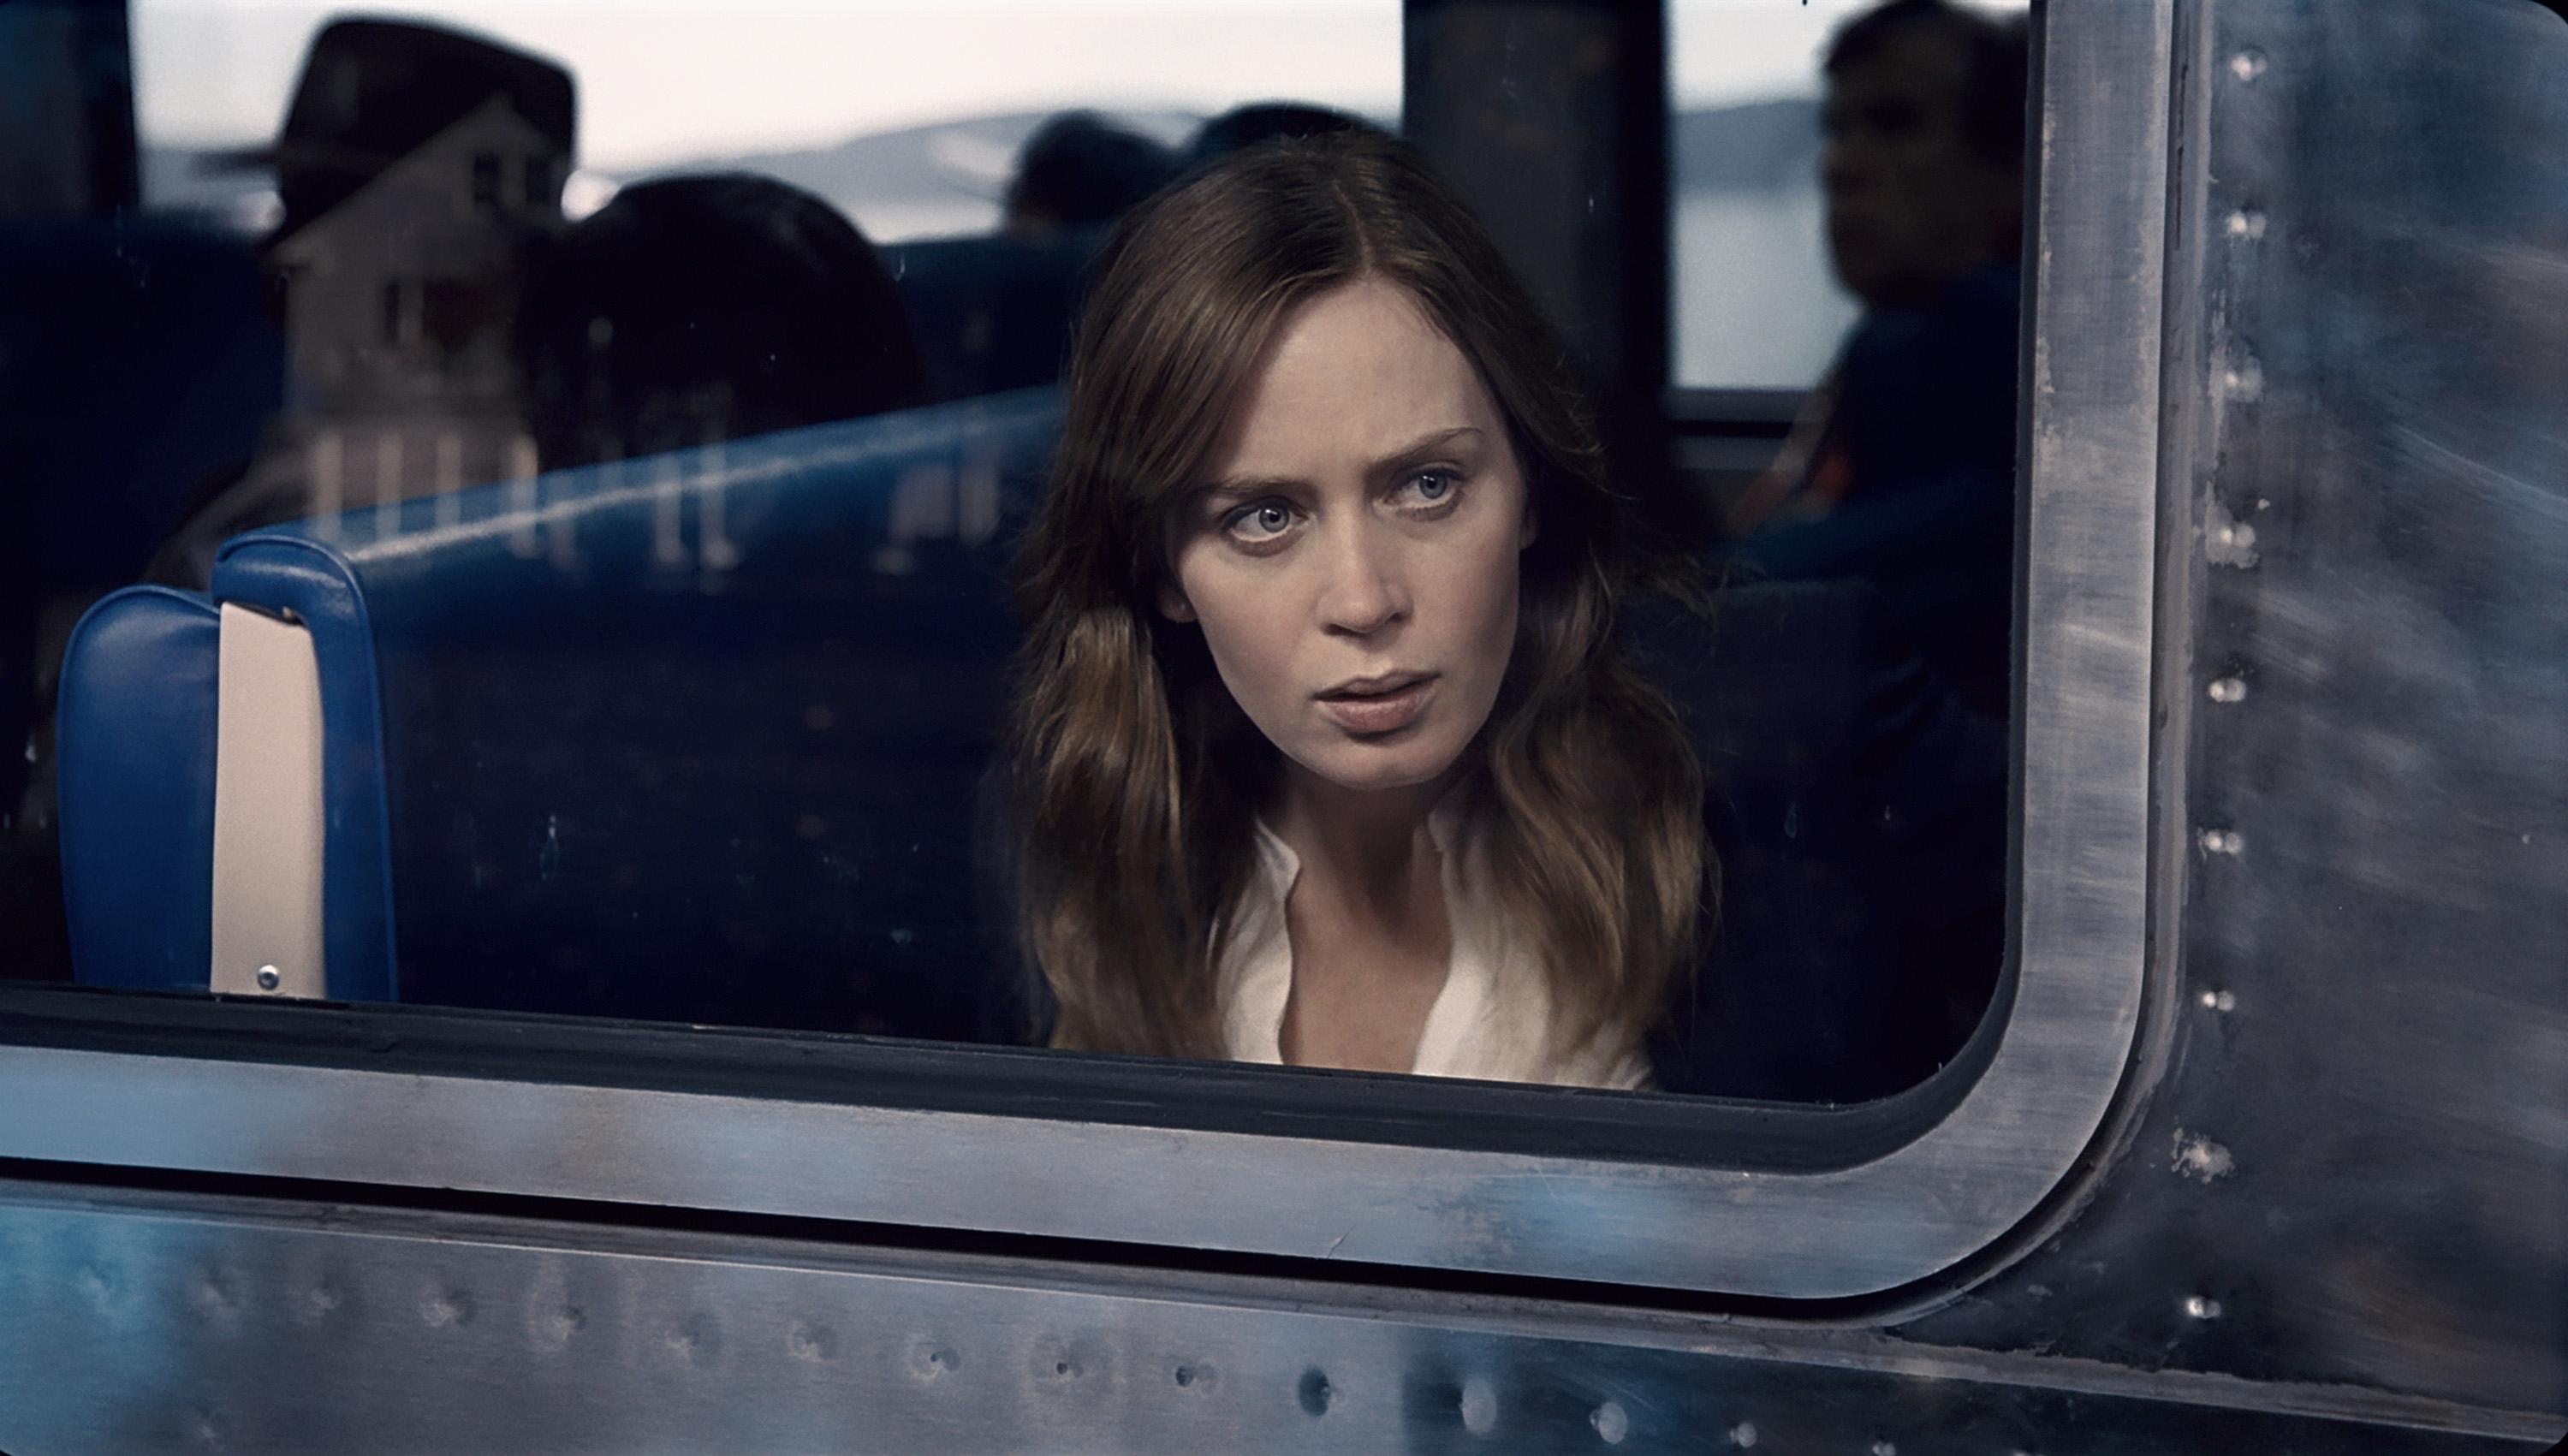 Emily Blunt plays Rachel Watson in the film 'The Girl on the Train.' (DreamWorks Pictures)